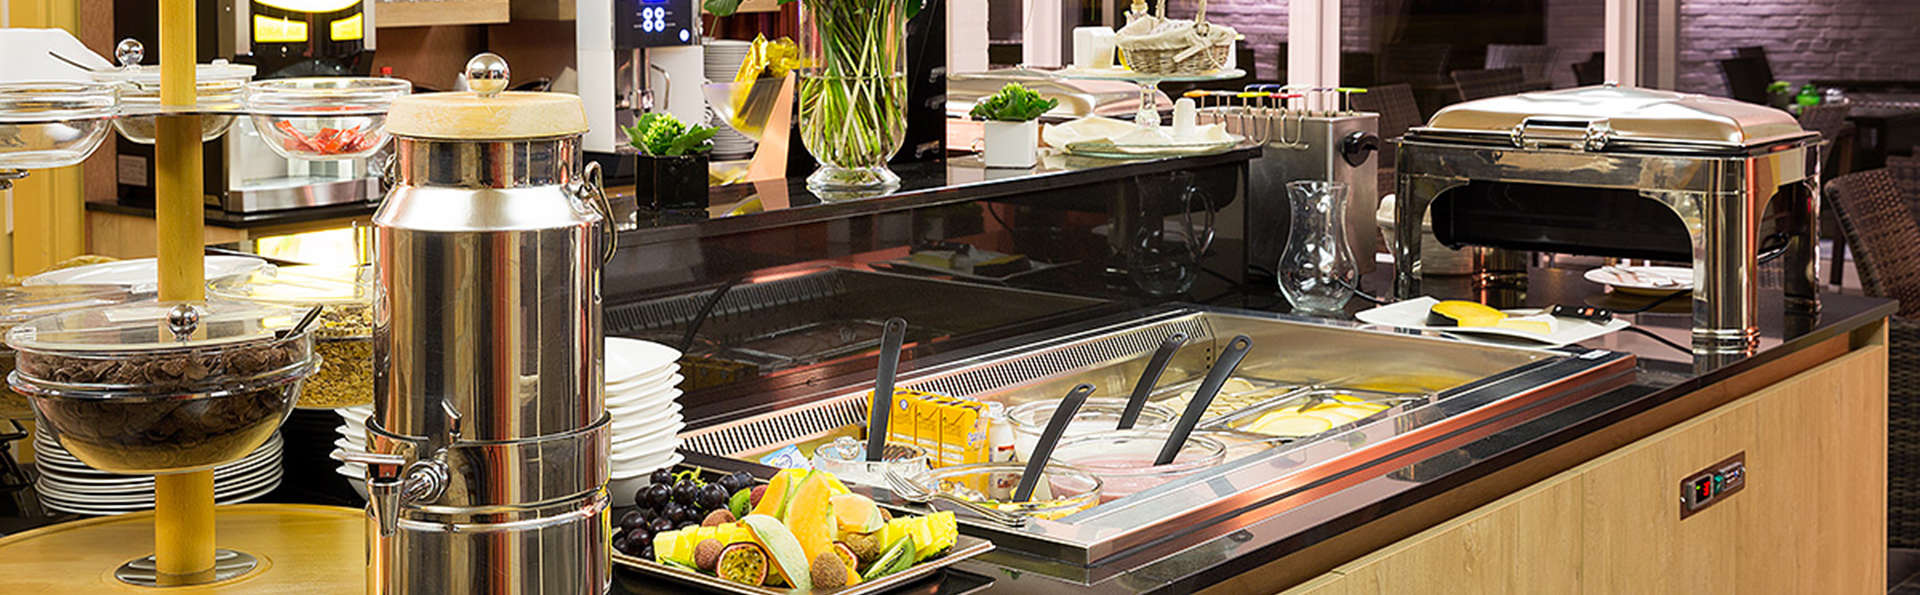 Hotel – Restaurant Weinebrugge  - EDIT_NEW_buffet2.jpg